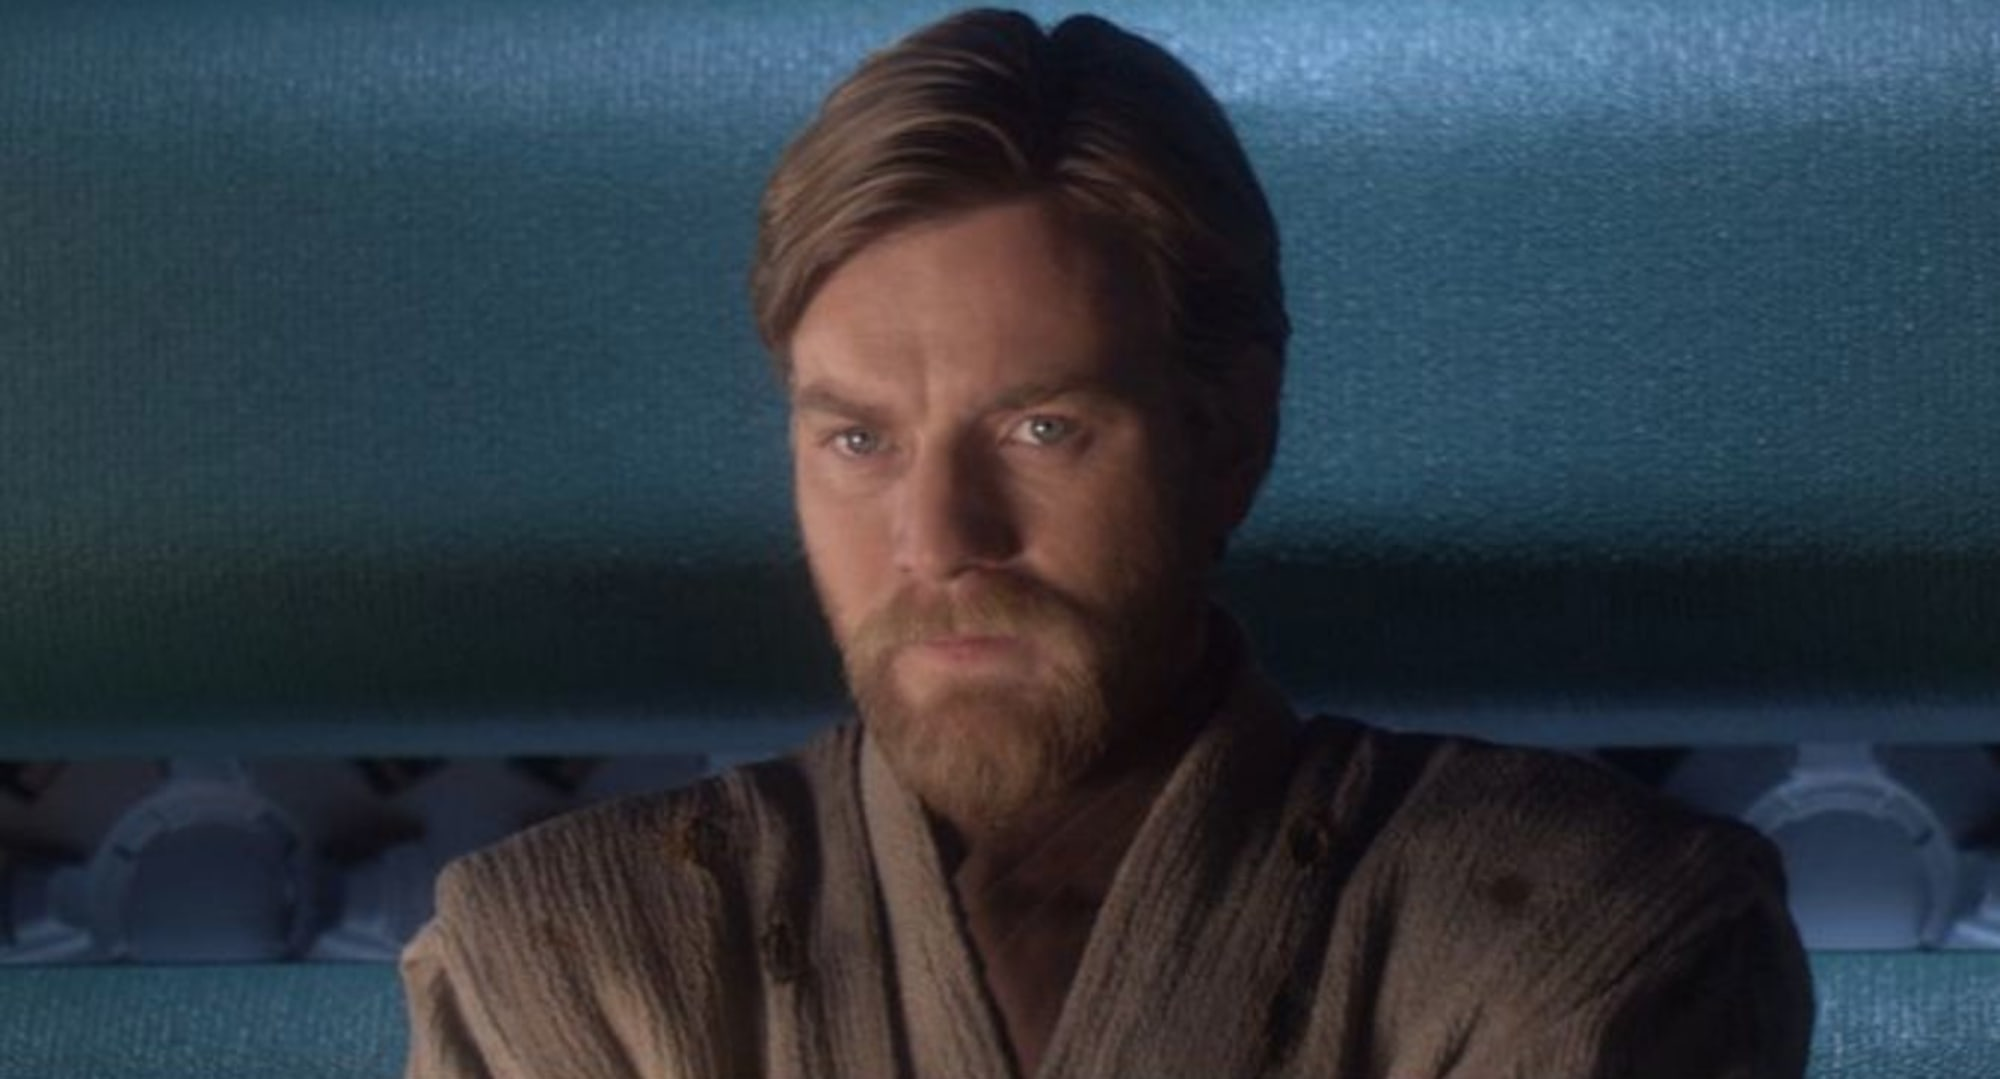 Leaked Star Wars video from the set of Disney's Obi-Wan Kenobi show